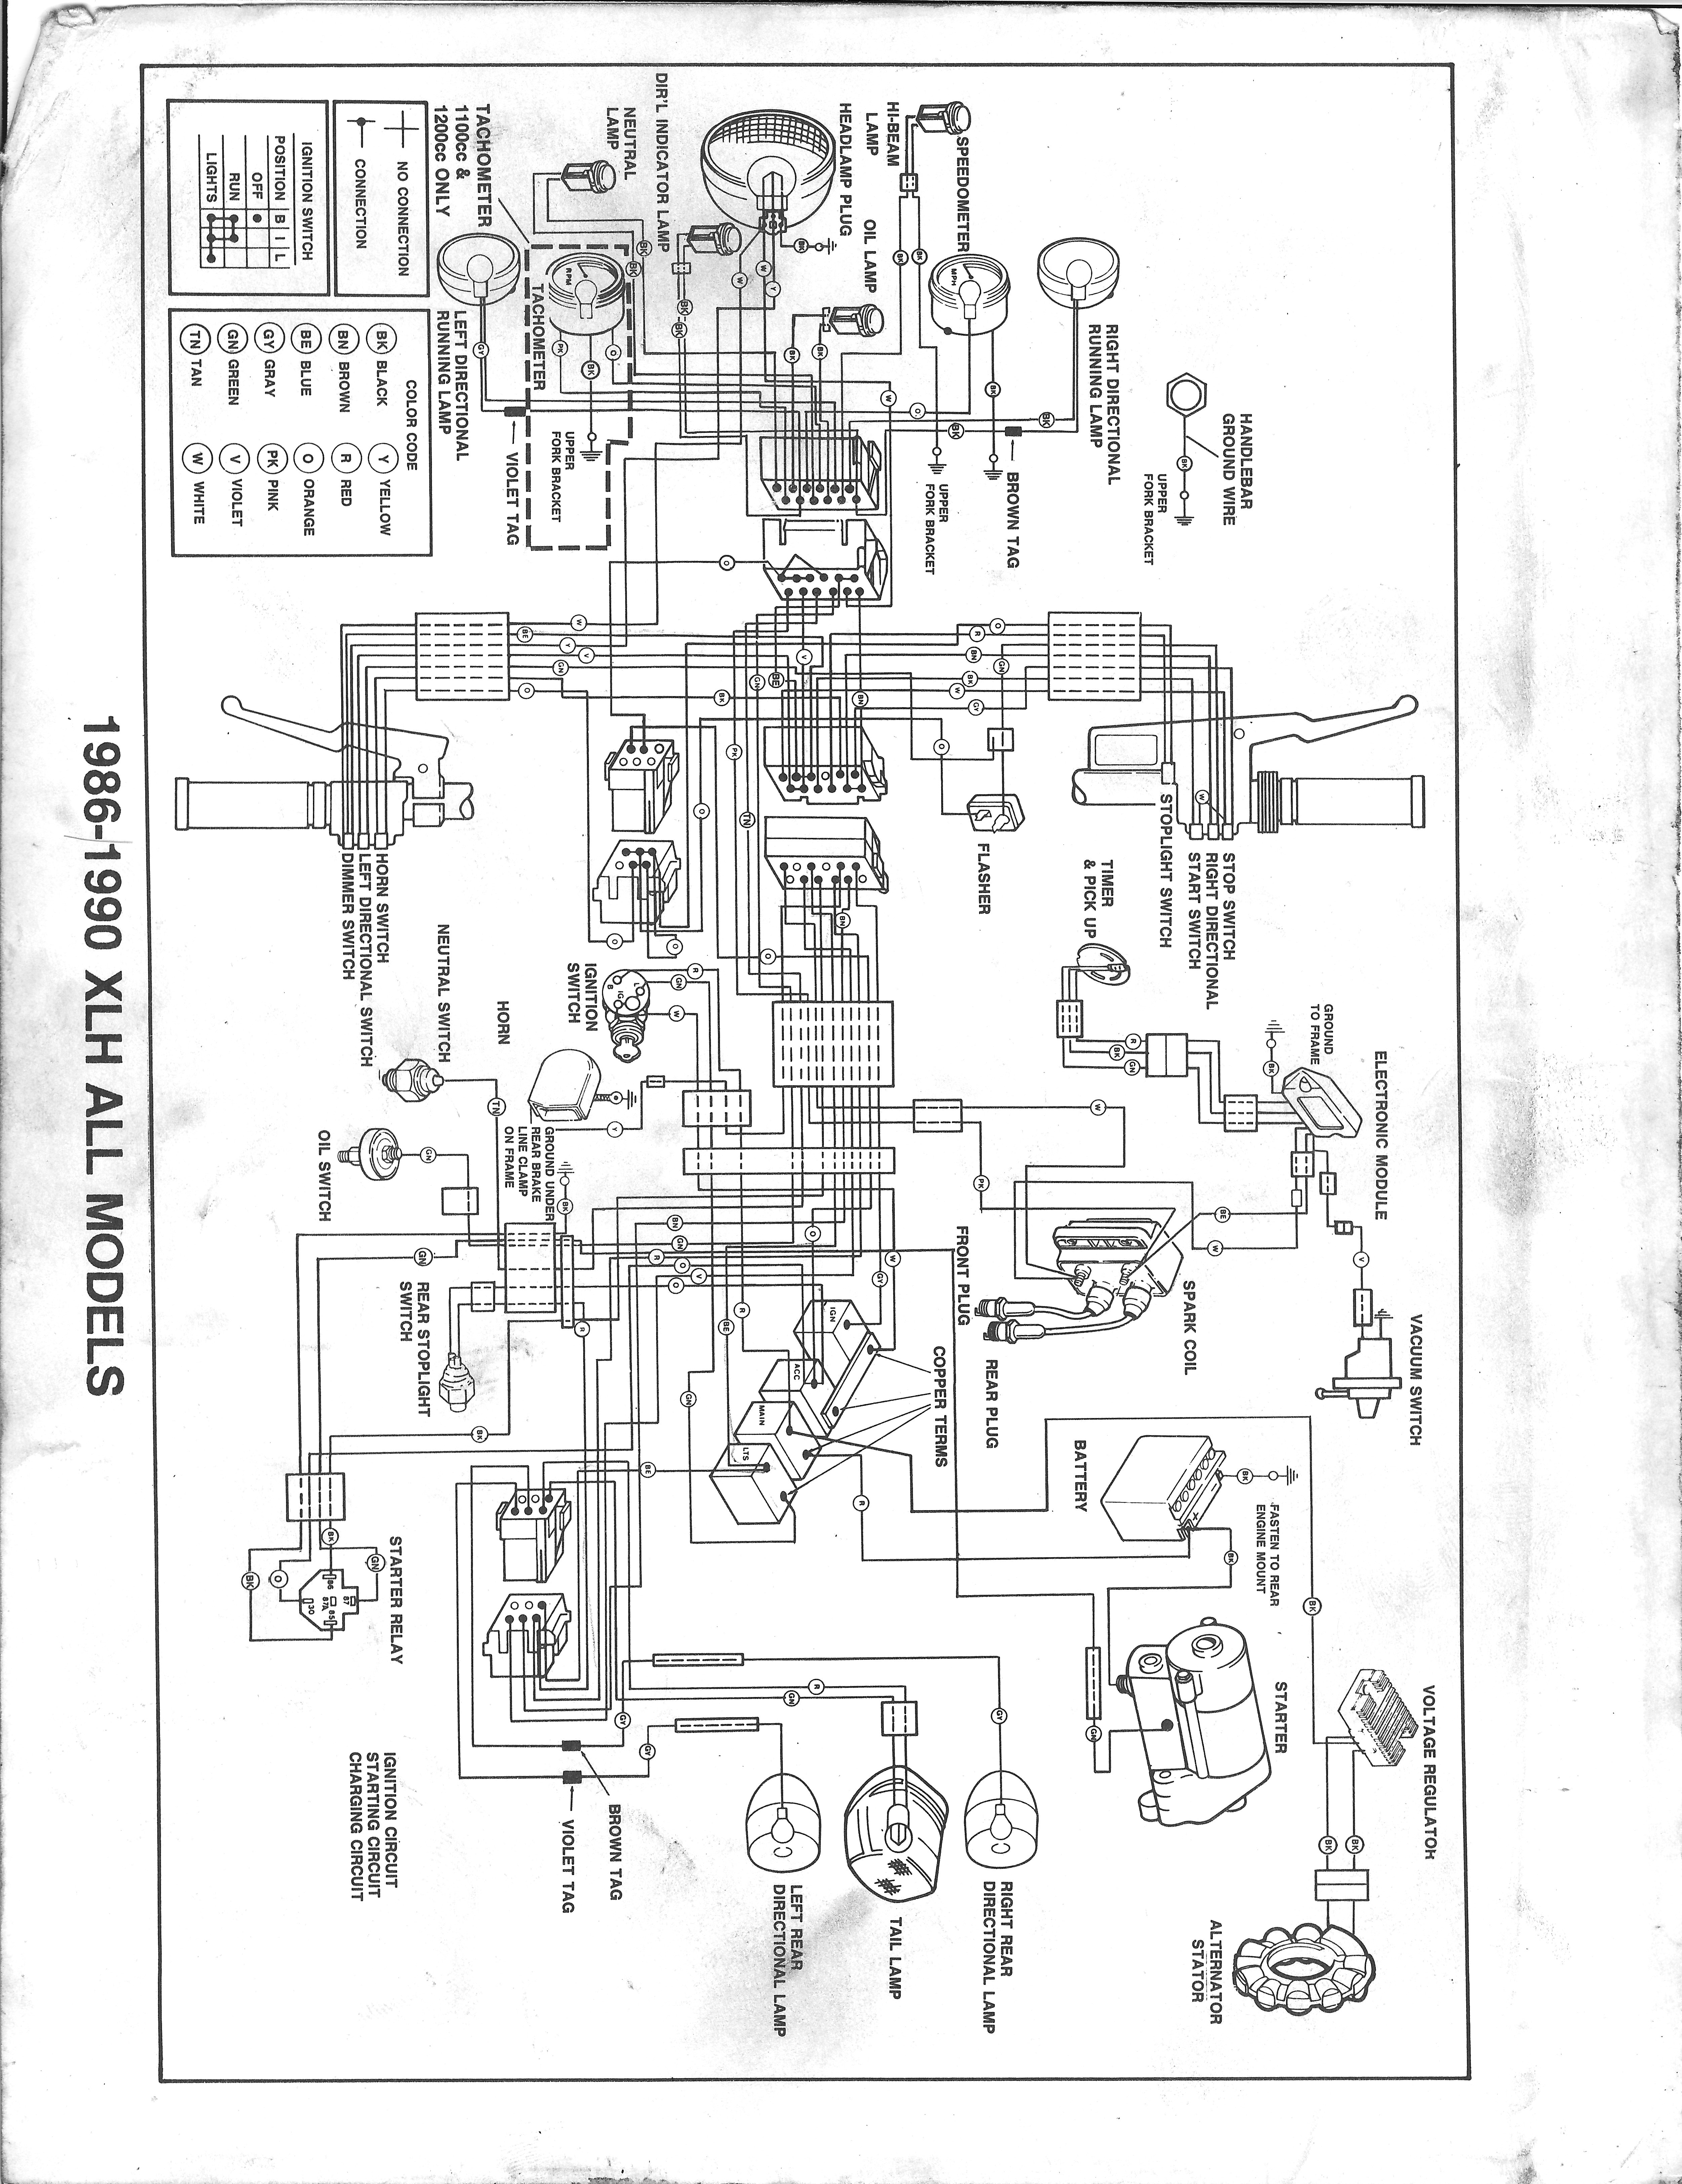 1990 Softail Wiring Diagram Diagrams Harley Davidson Heritage The Best Html 1991